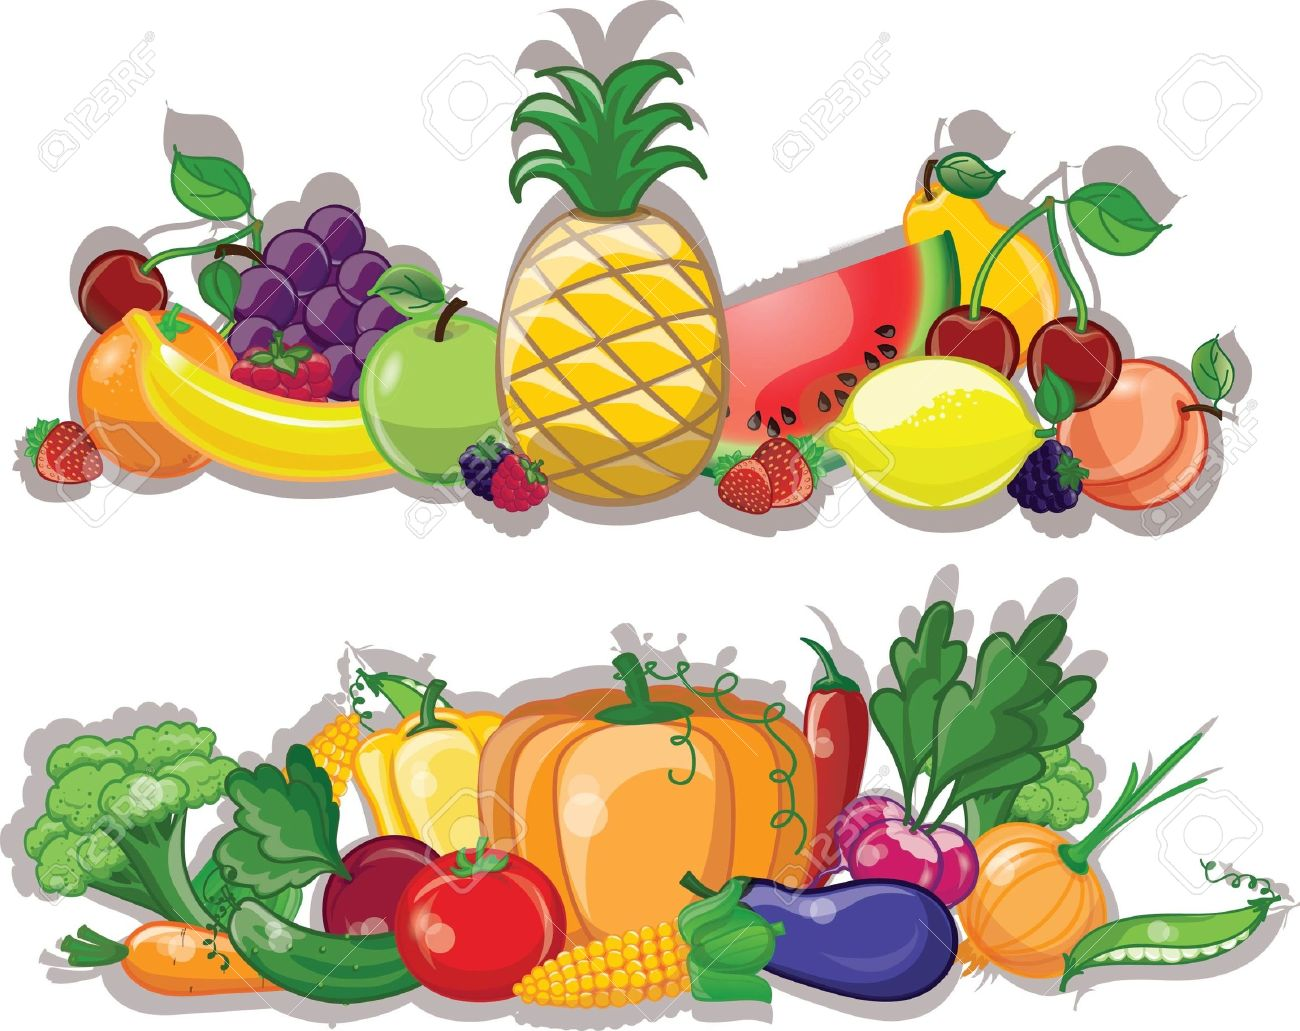 Cartoon vegetables and fruits, background - 20302580